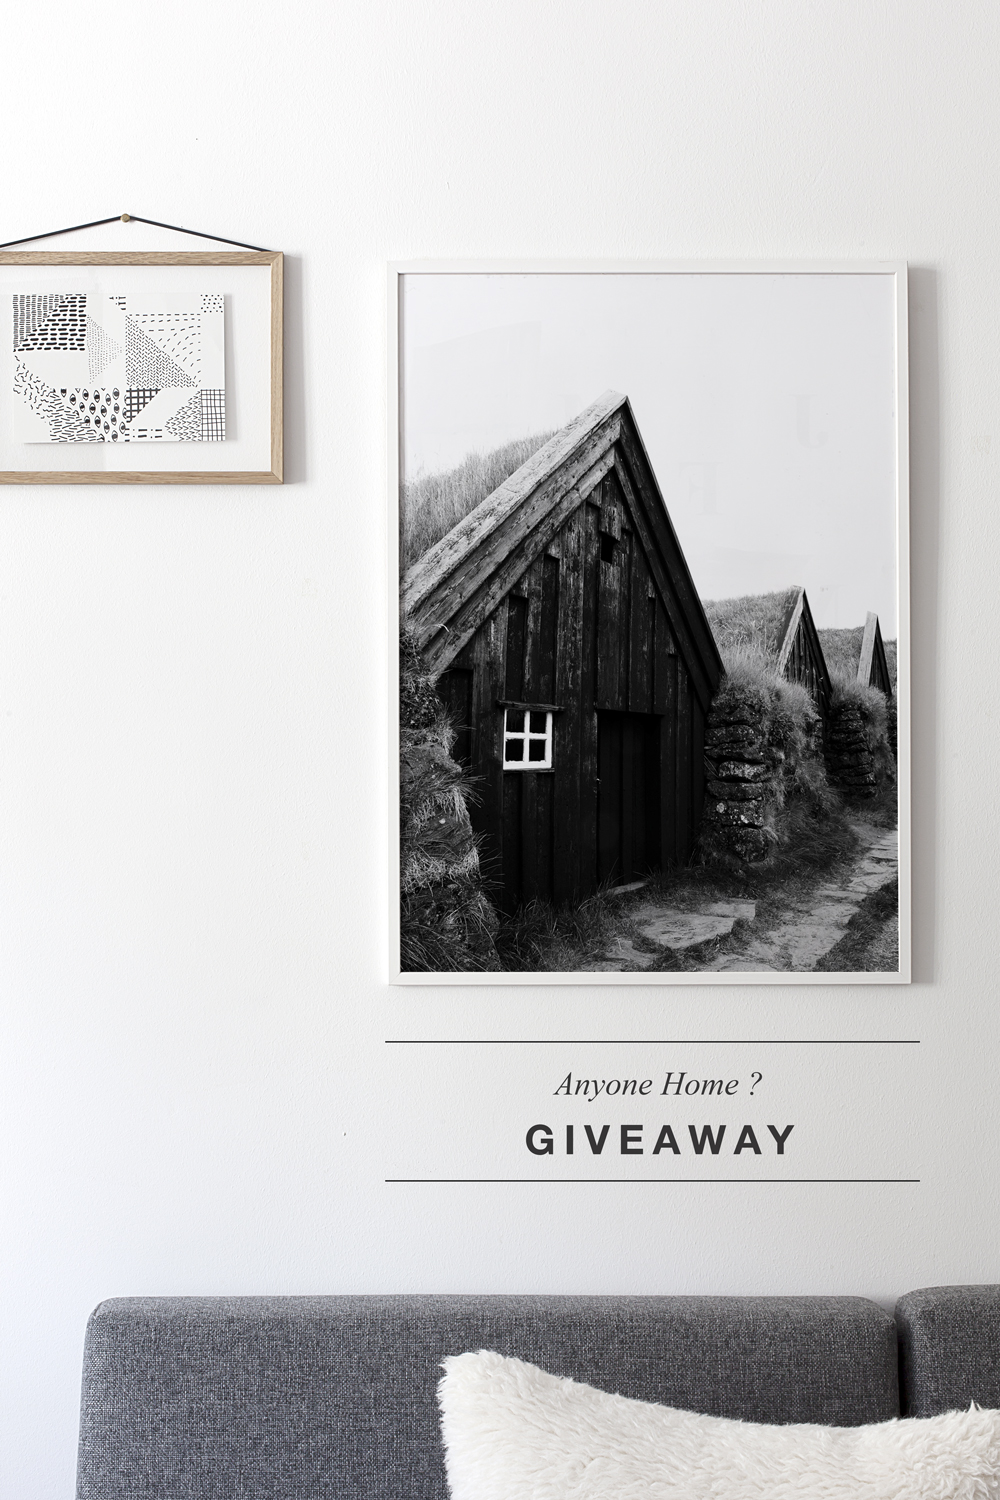 Anyone Home ? giveaway